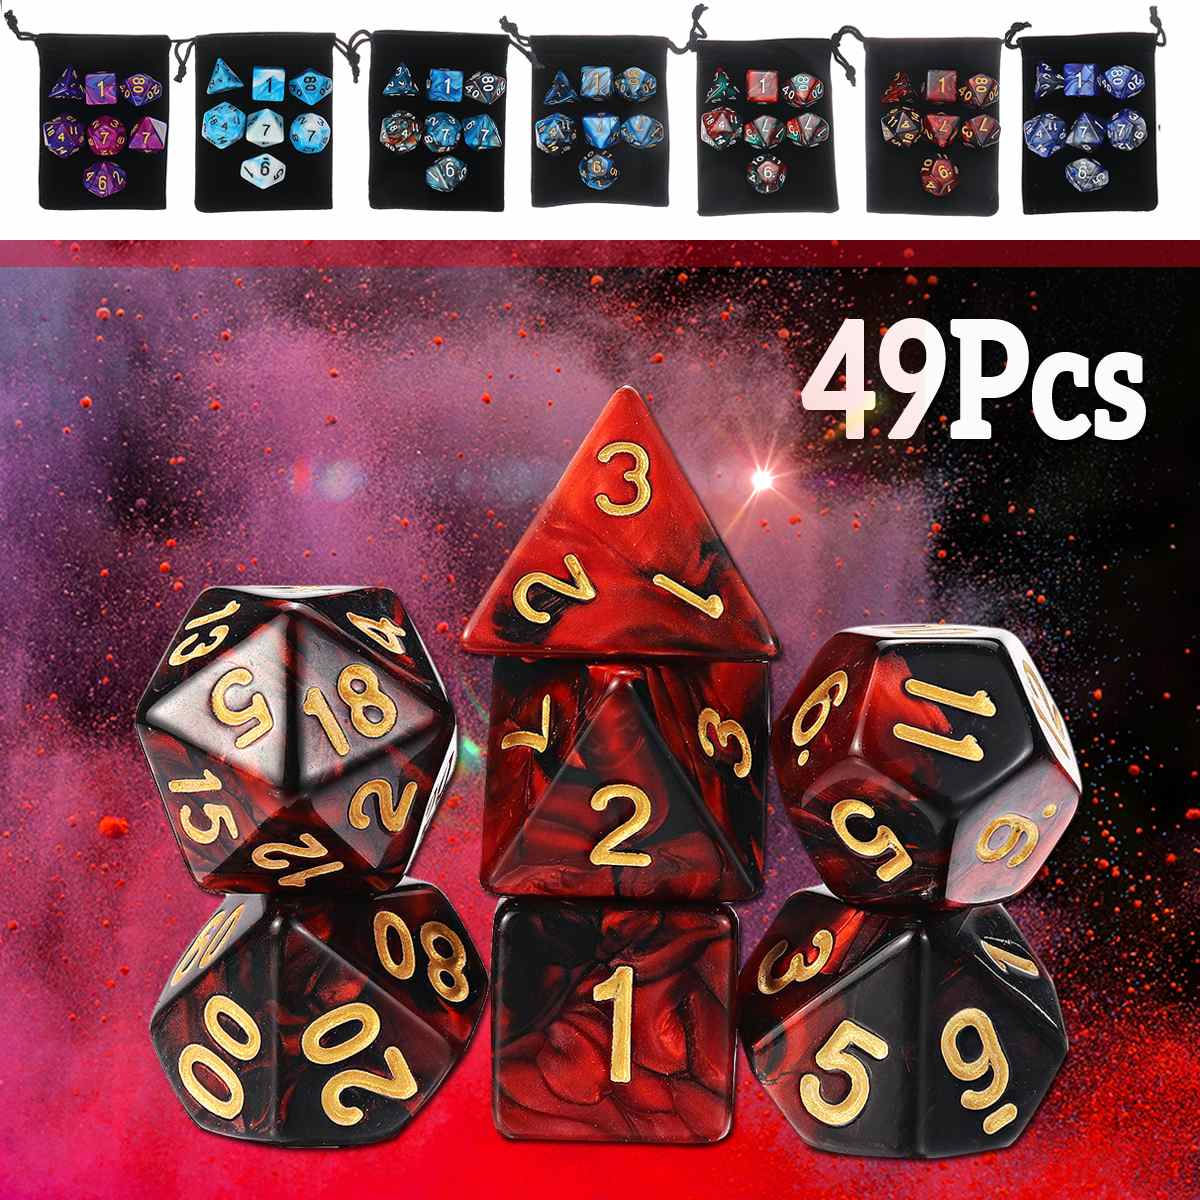 49PCS Polyhedral Dices Set Polyhedral Dices With Black Pouch Bags For Dungeons Dragons Games